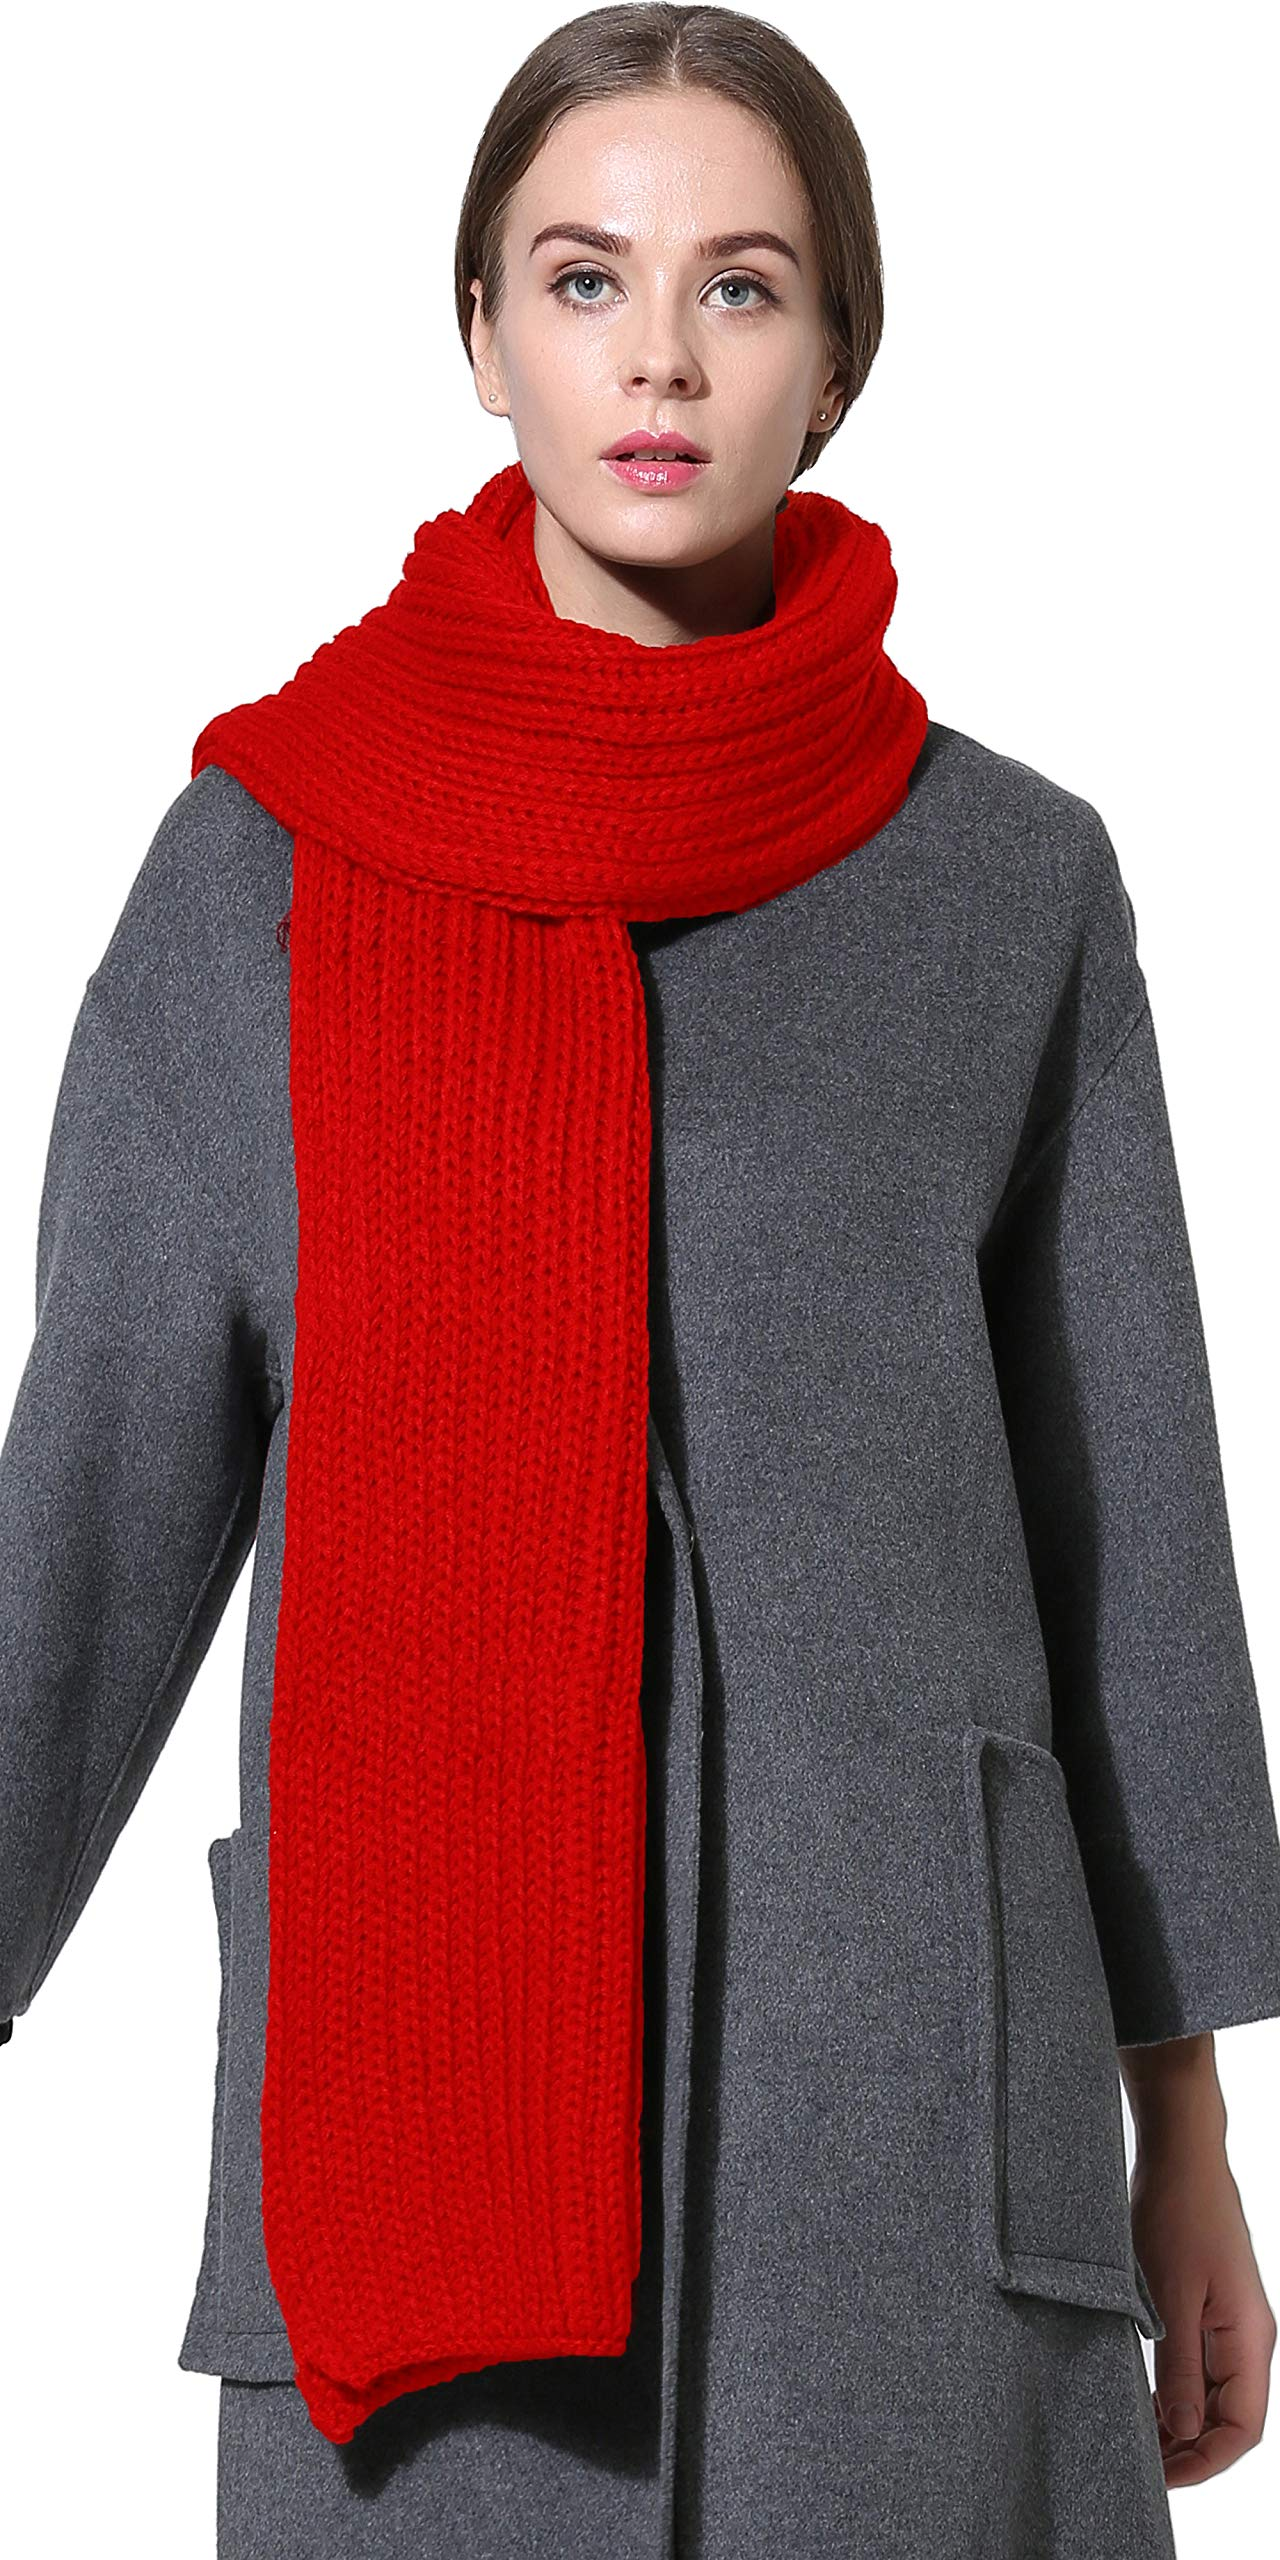 Women Men Winter Thick Cable Knit Wrap Chunky Warm Scarf All Colors Red Hor